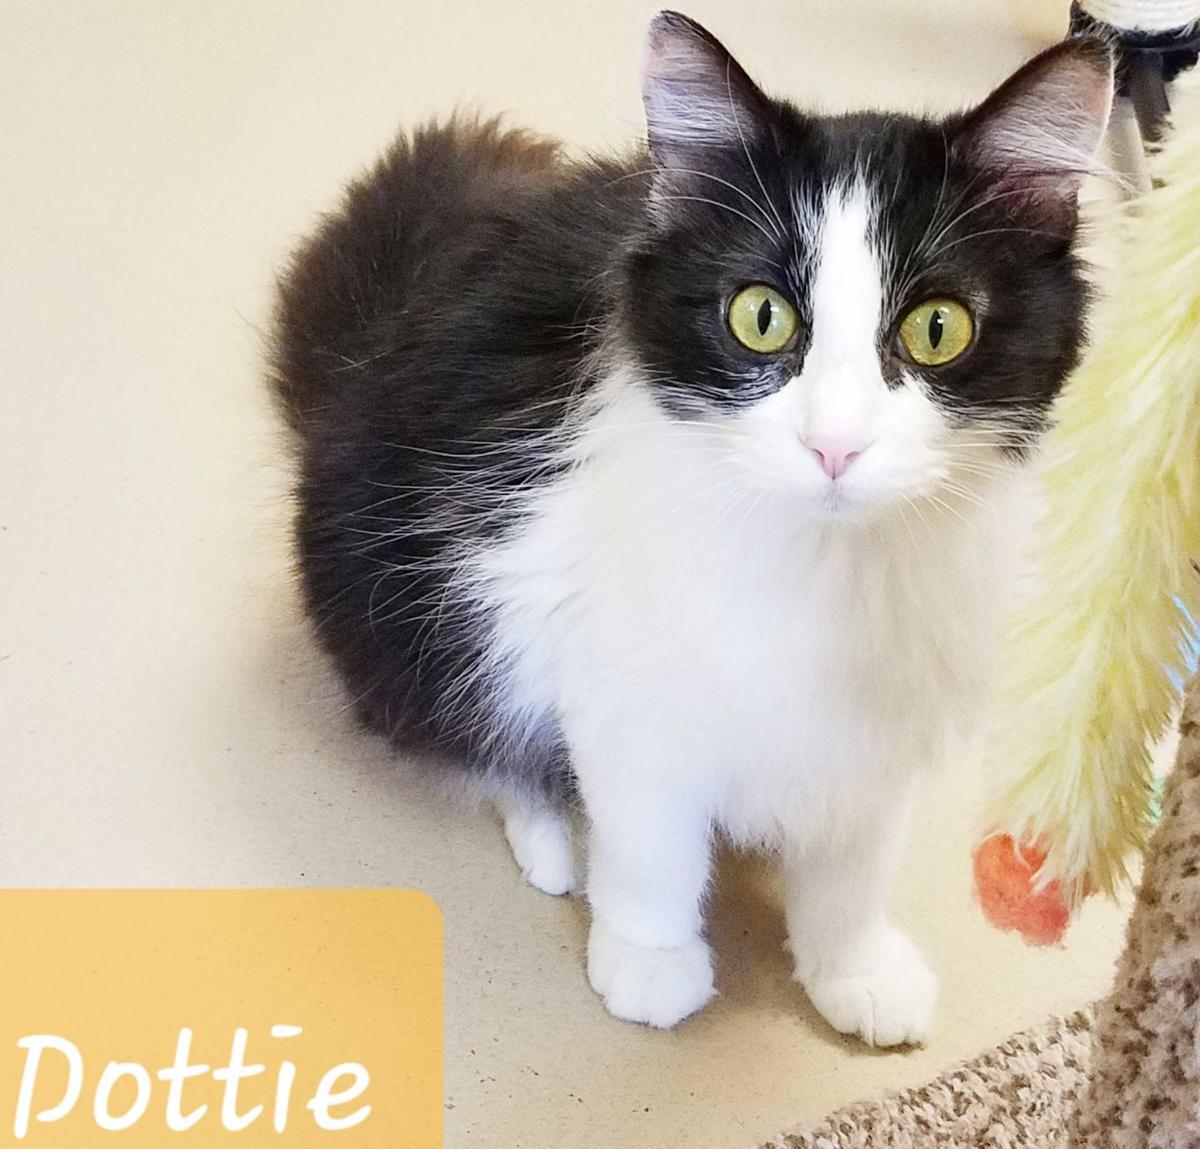 Pet Dottie